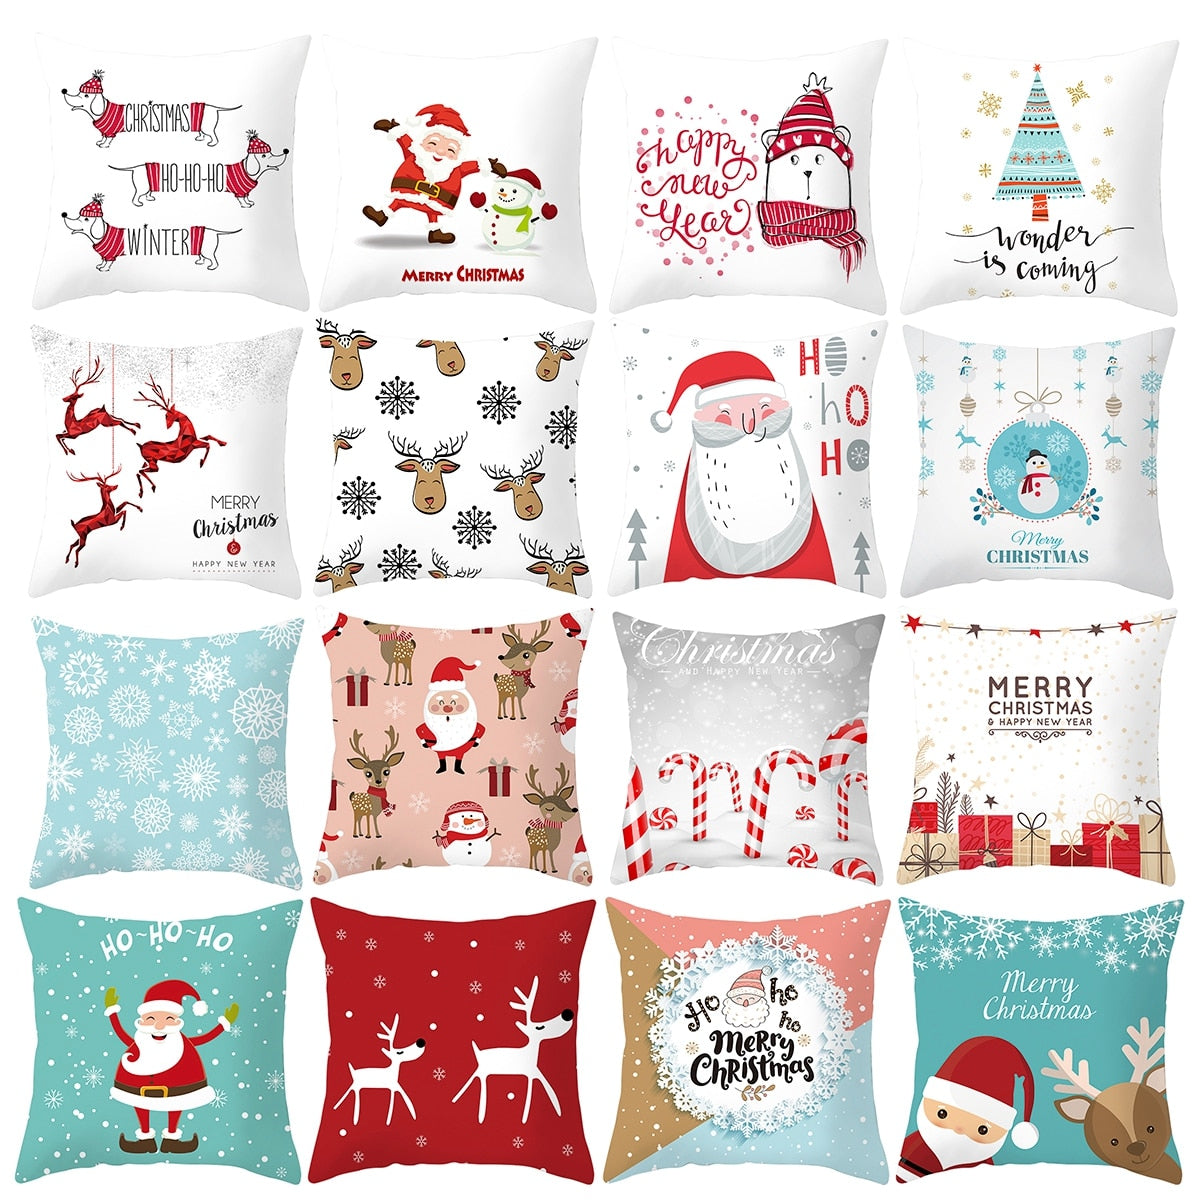 Merry Christmas Cushion Cover Decorations